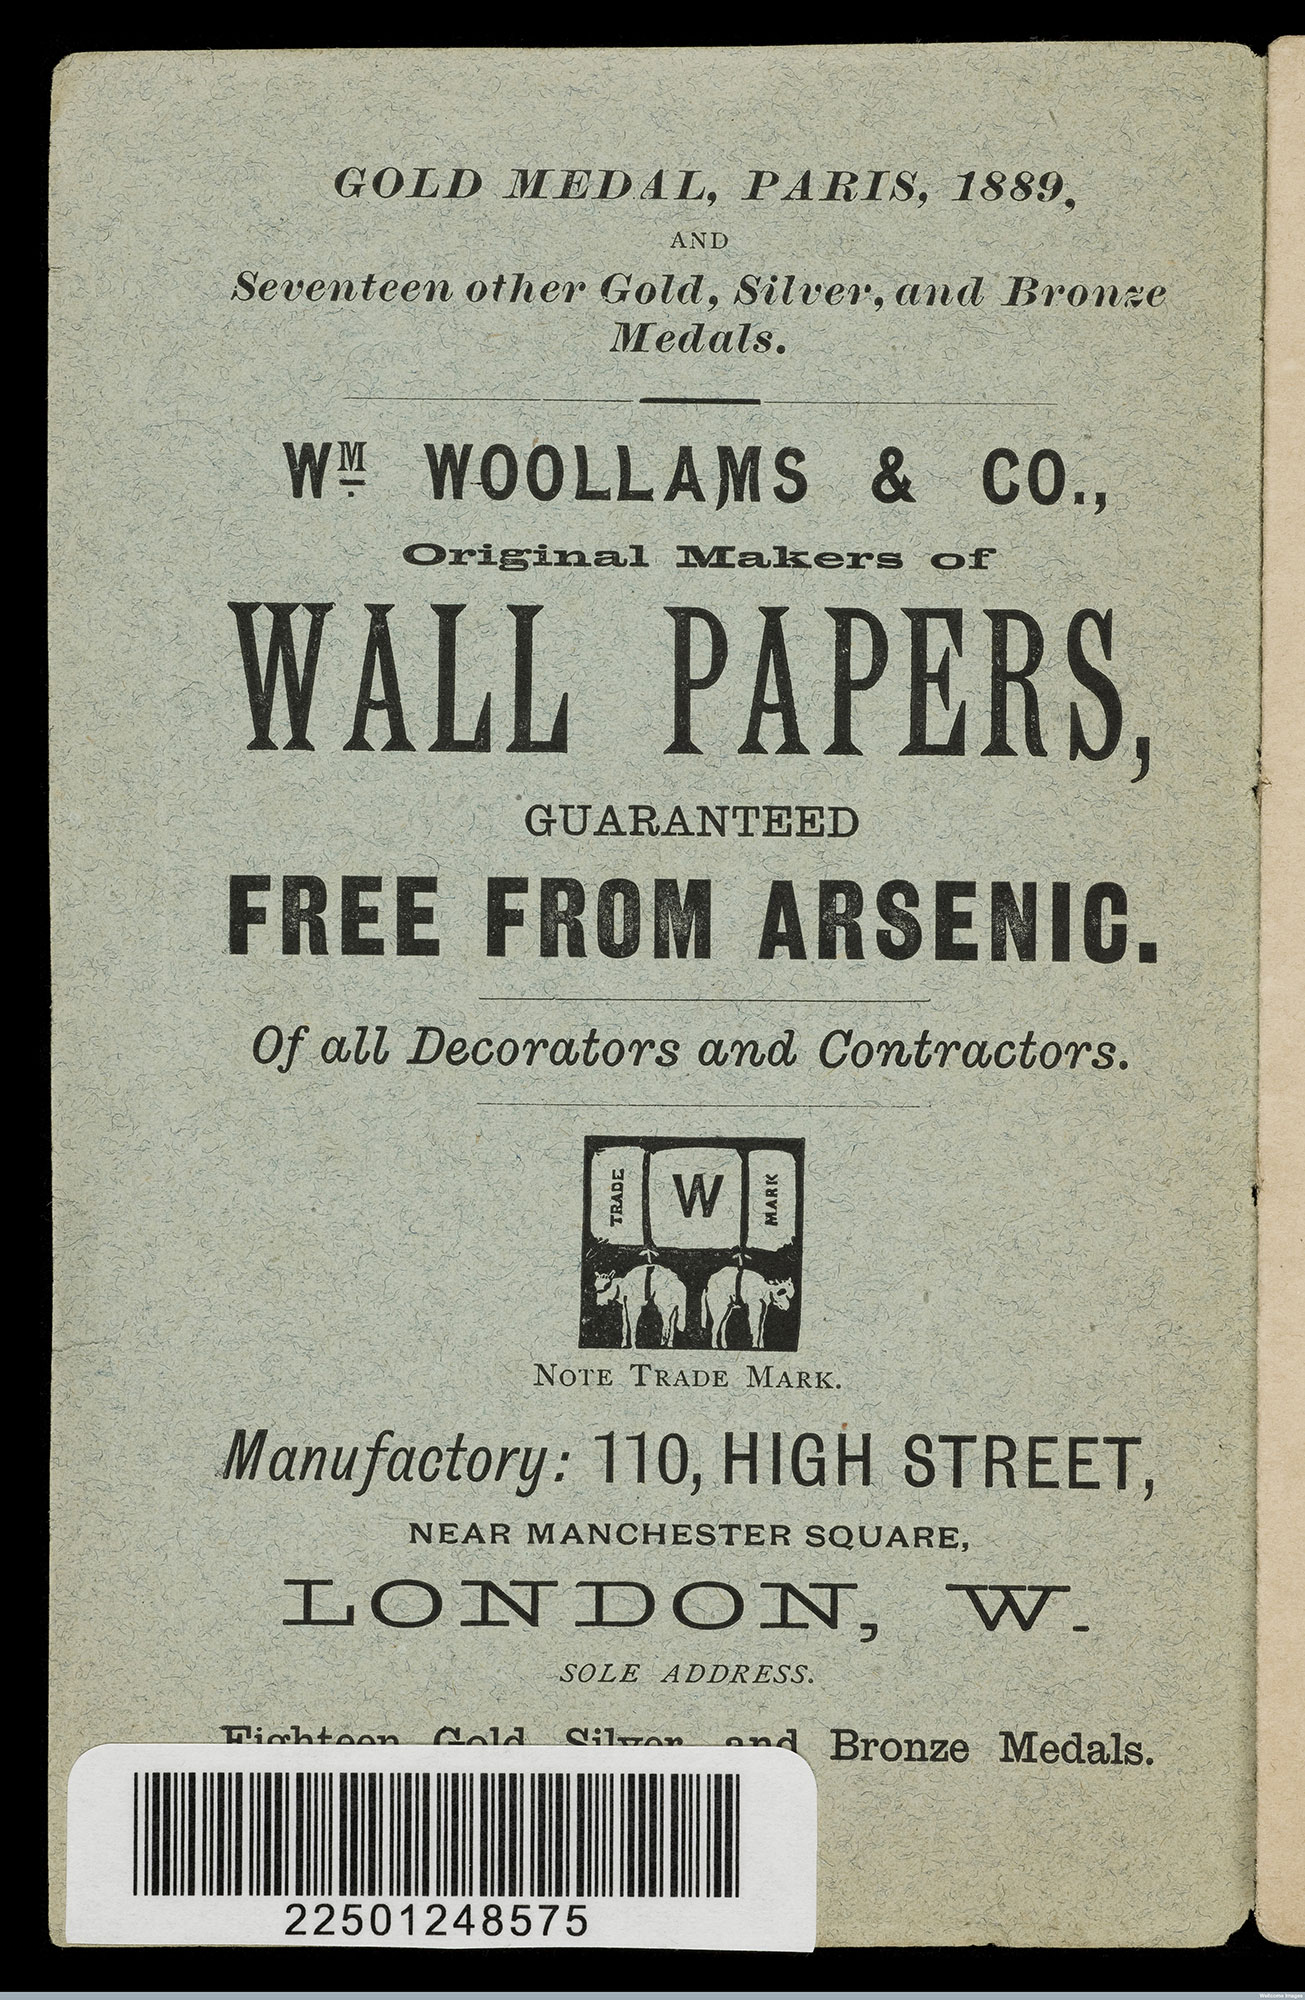 Advertisement for wallpapers free from arsenic